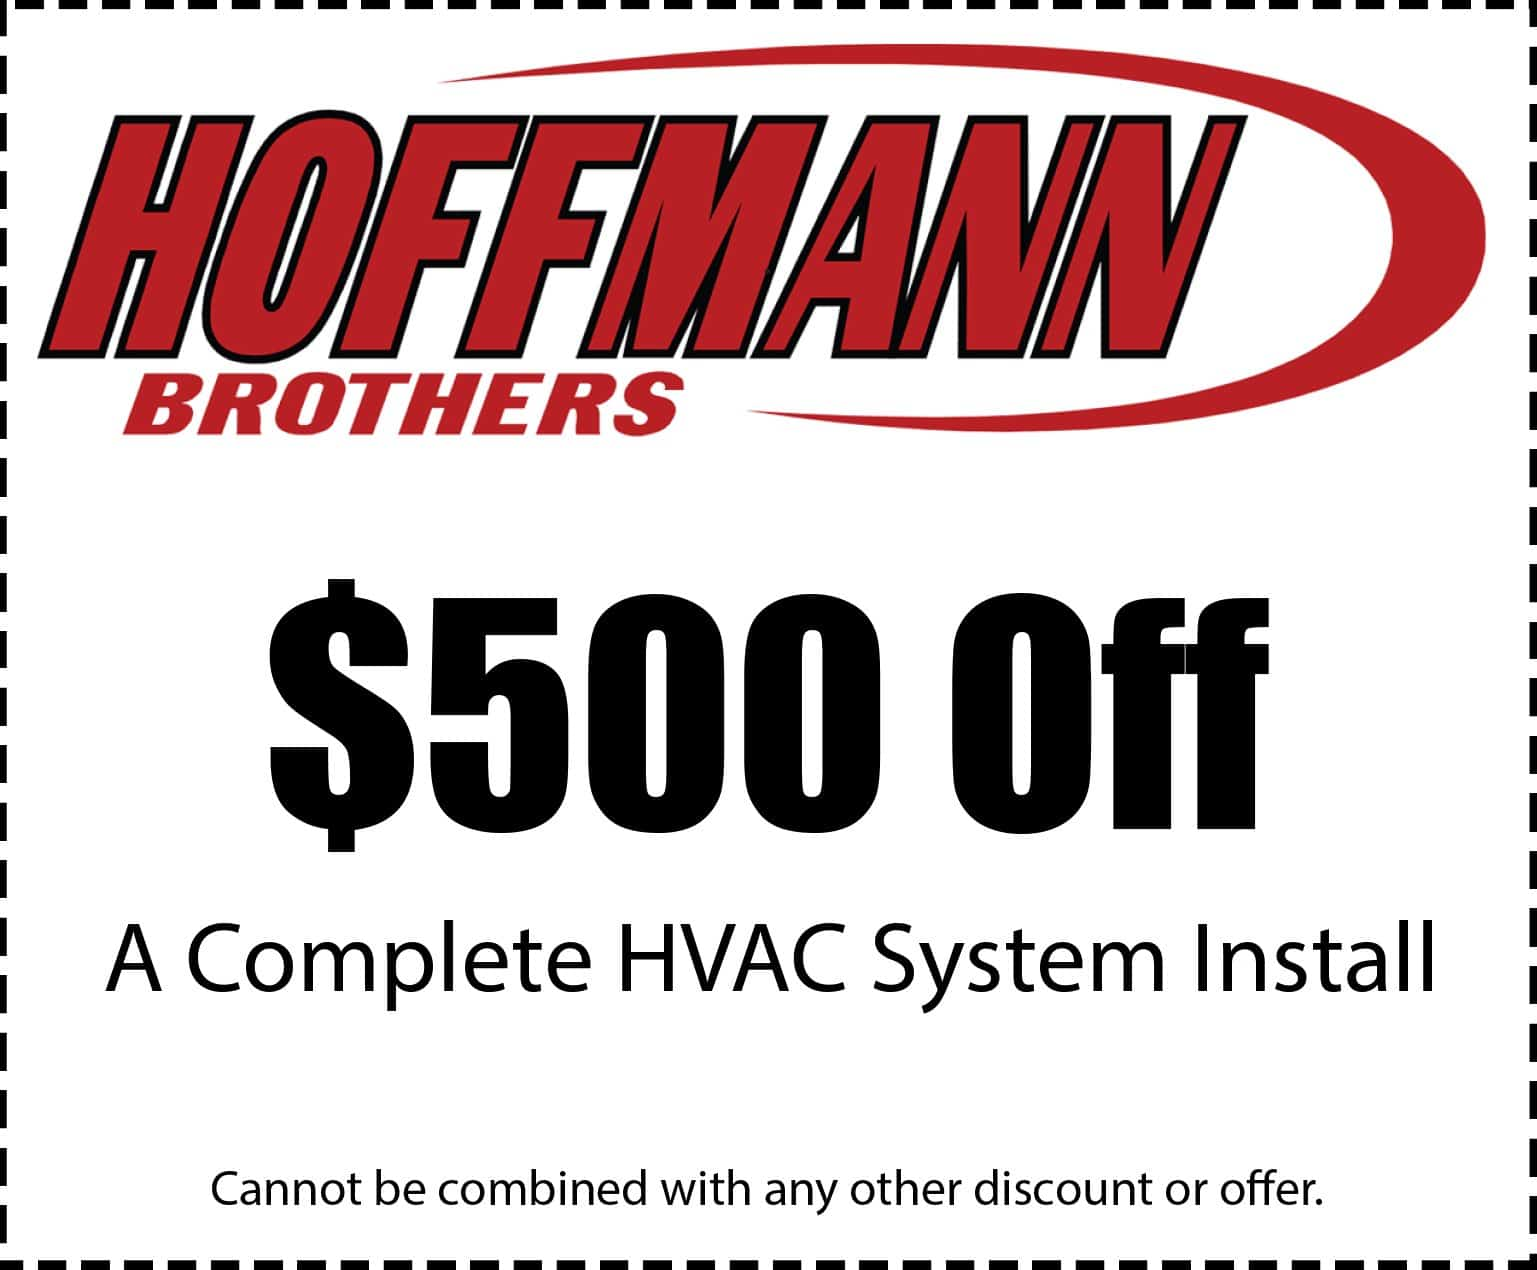 $500 Off HVAC System Install Coupon